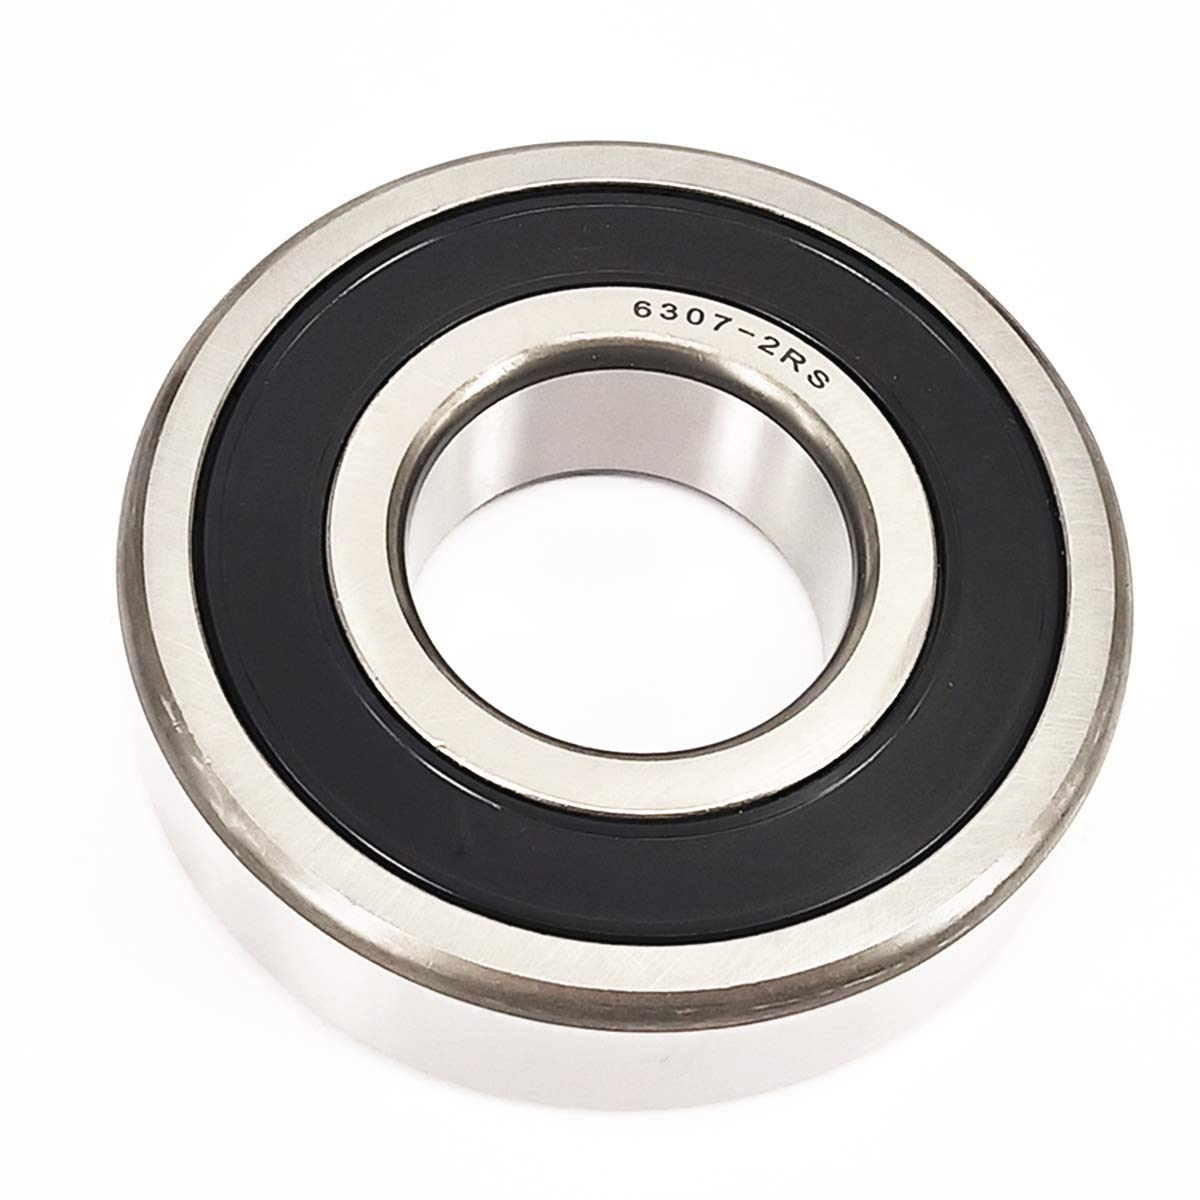 ZH Precision Chrome Steel 1 Pack 6307-2RS Bearing 35x80x21 Sealed Ball Bearings Zhonghai Precision Bearing Manufacture